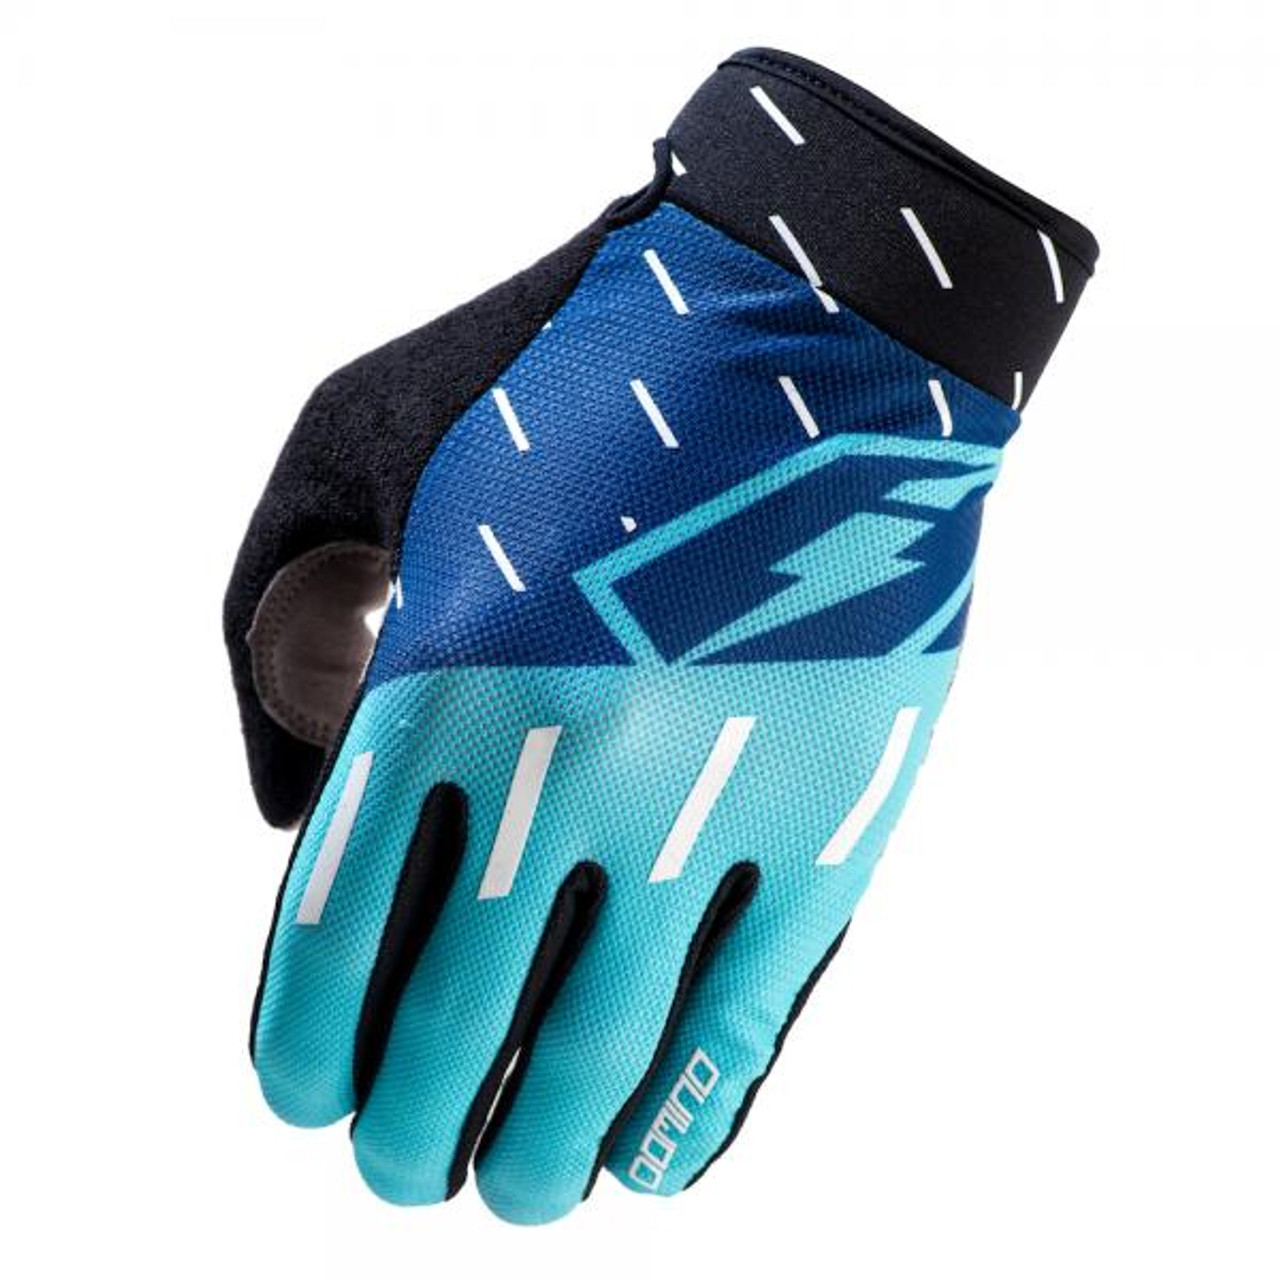 Gloves Domino, navy/ teal/ white